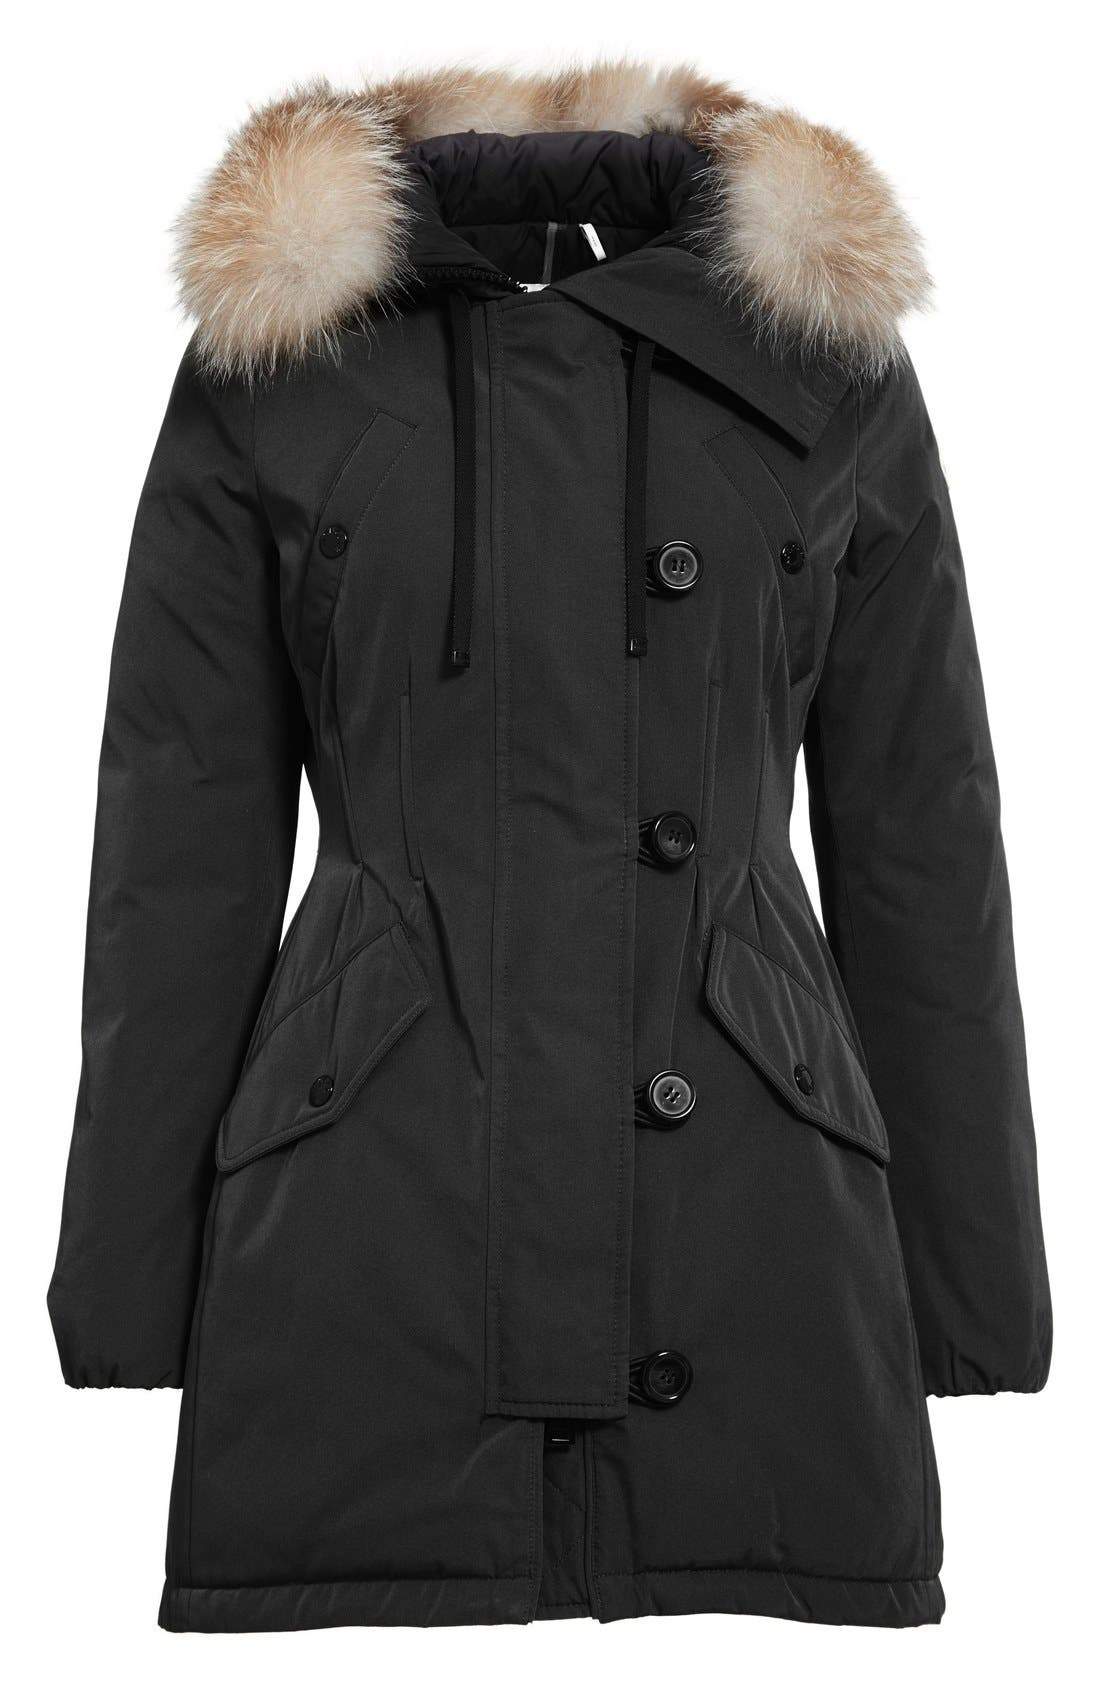 Aredhel Hooded Down Parka with Removable Genuine Fox Fur Trim,                             Alternate thumbnail 8, color,                             001